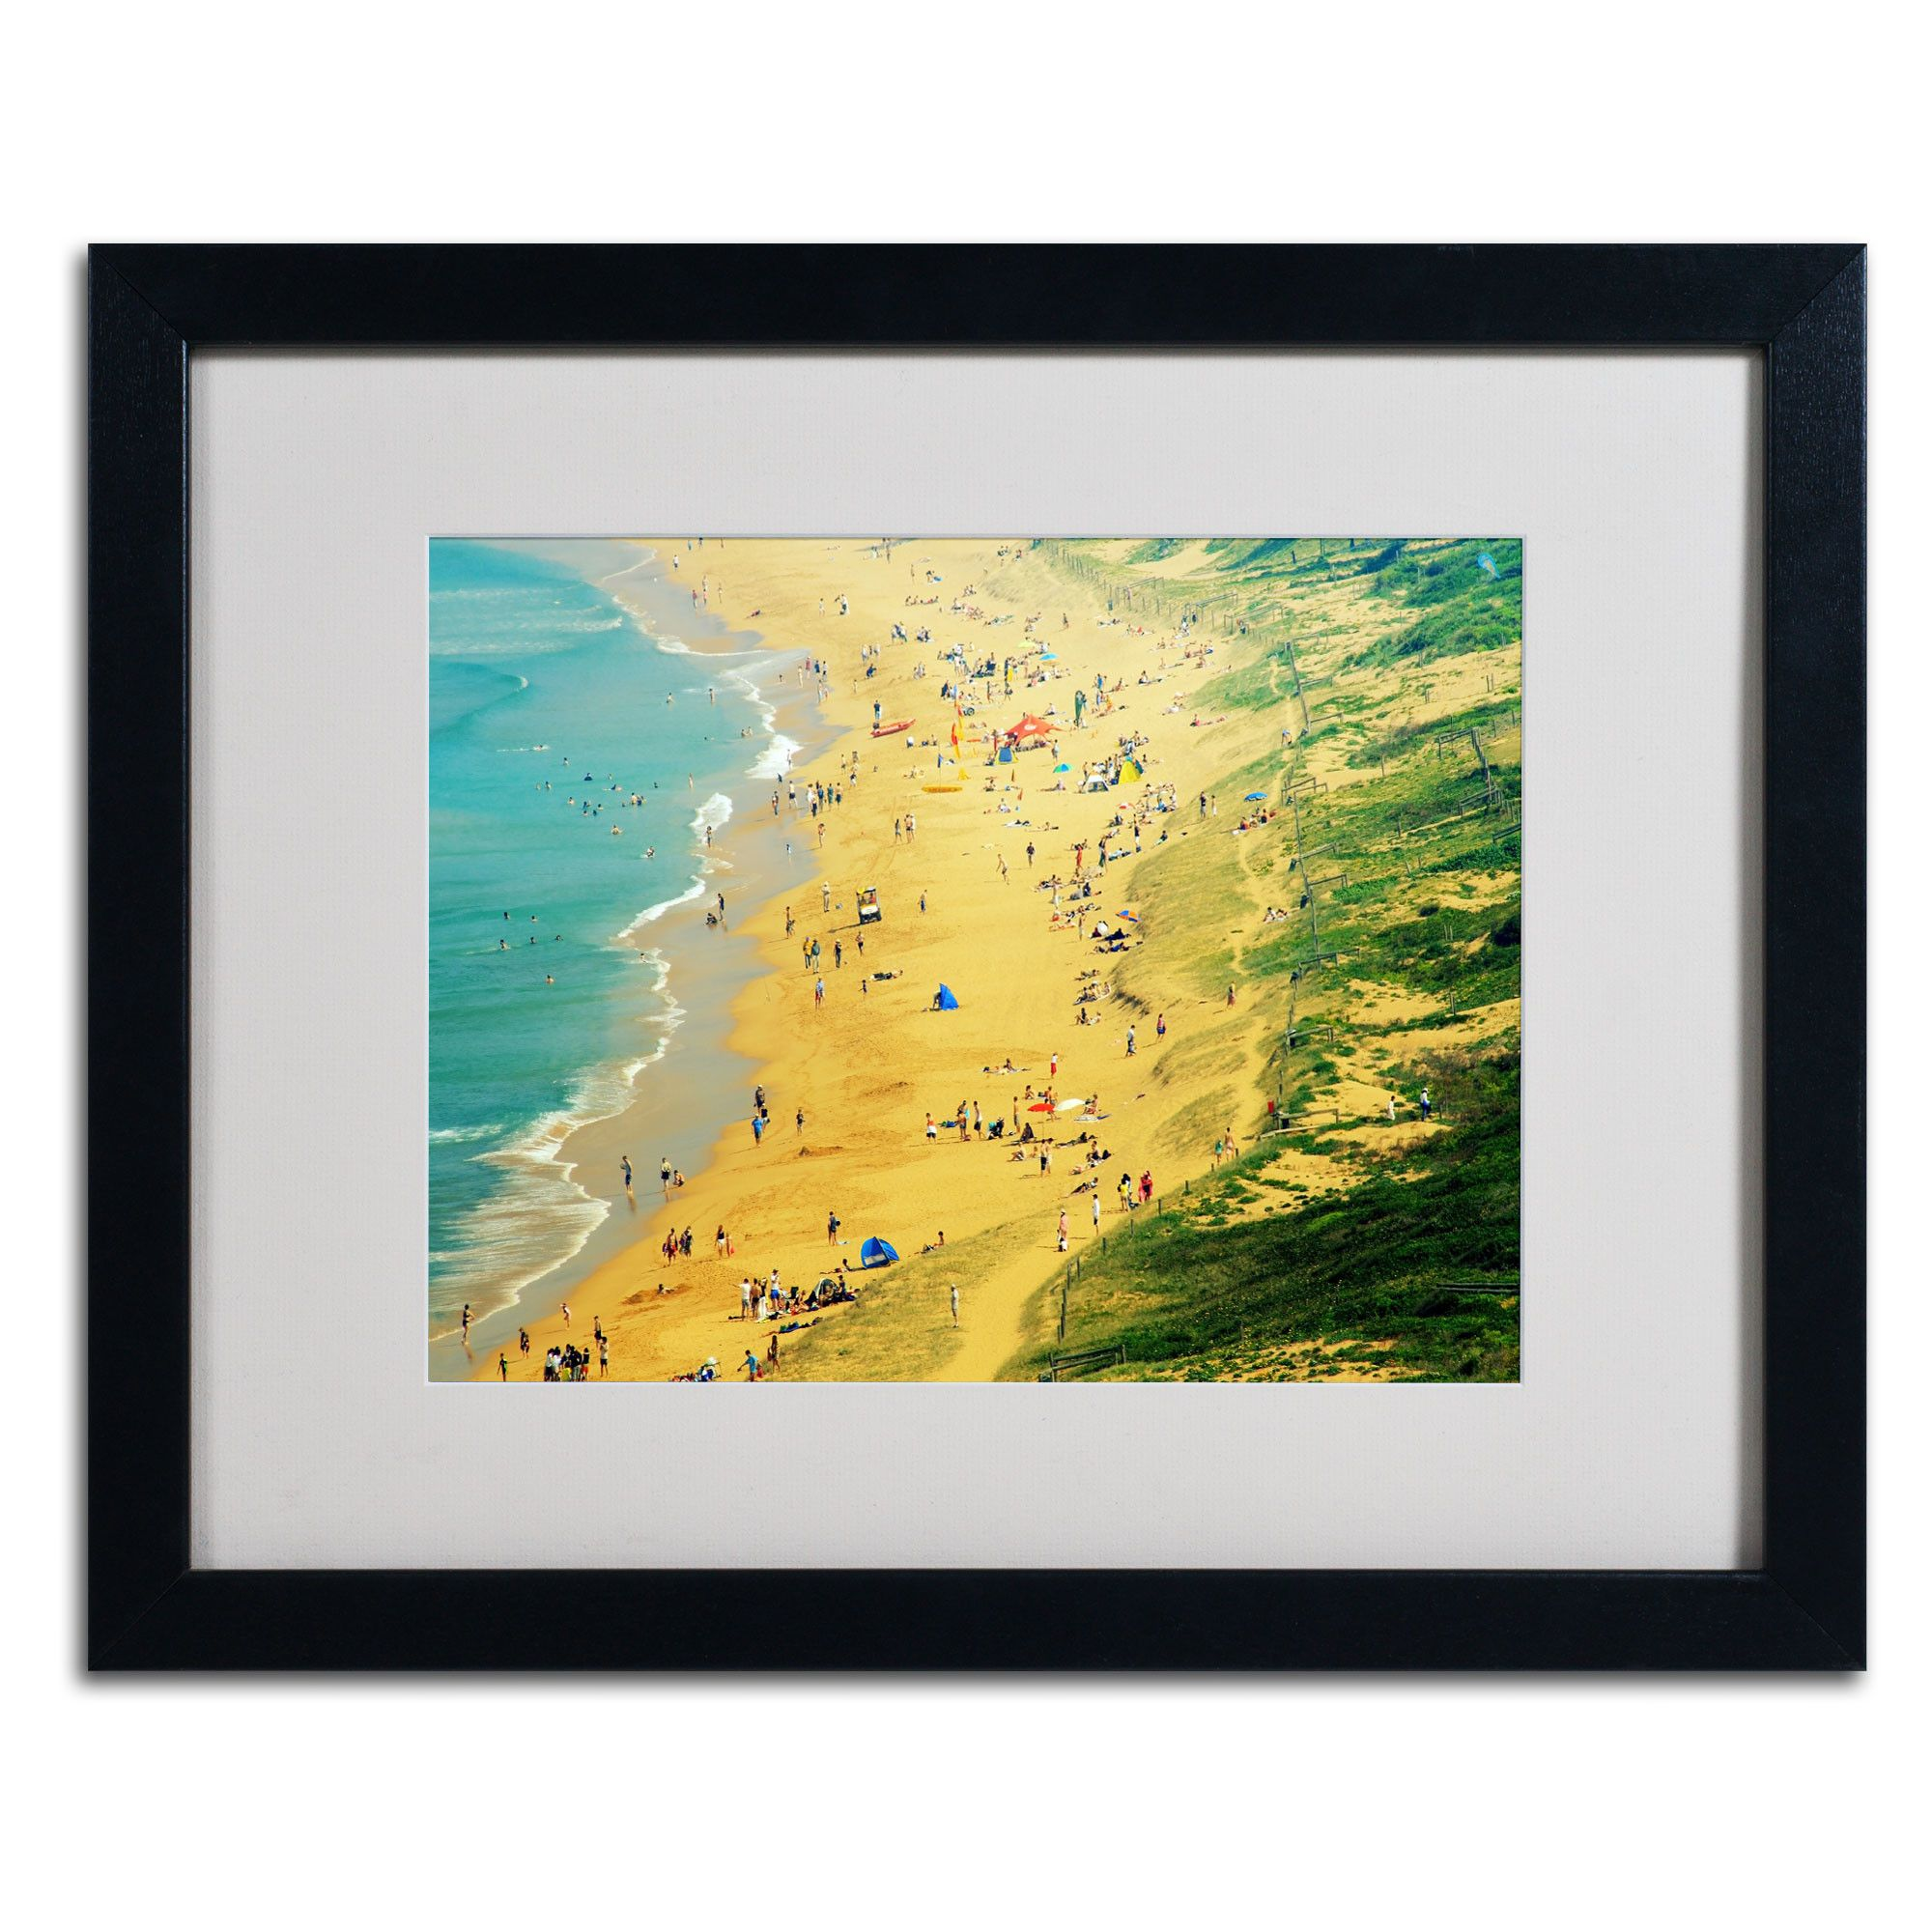 Life is a Beach by Beata Czyzowska Young Matted Framed Photographic Print